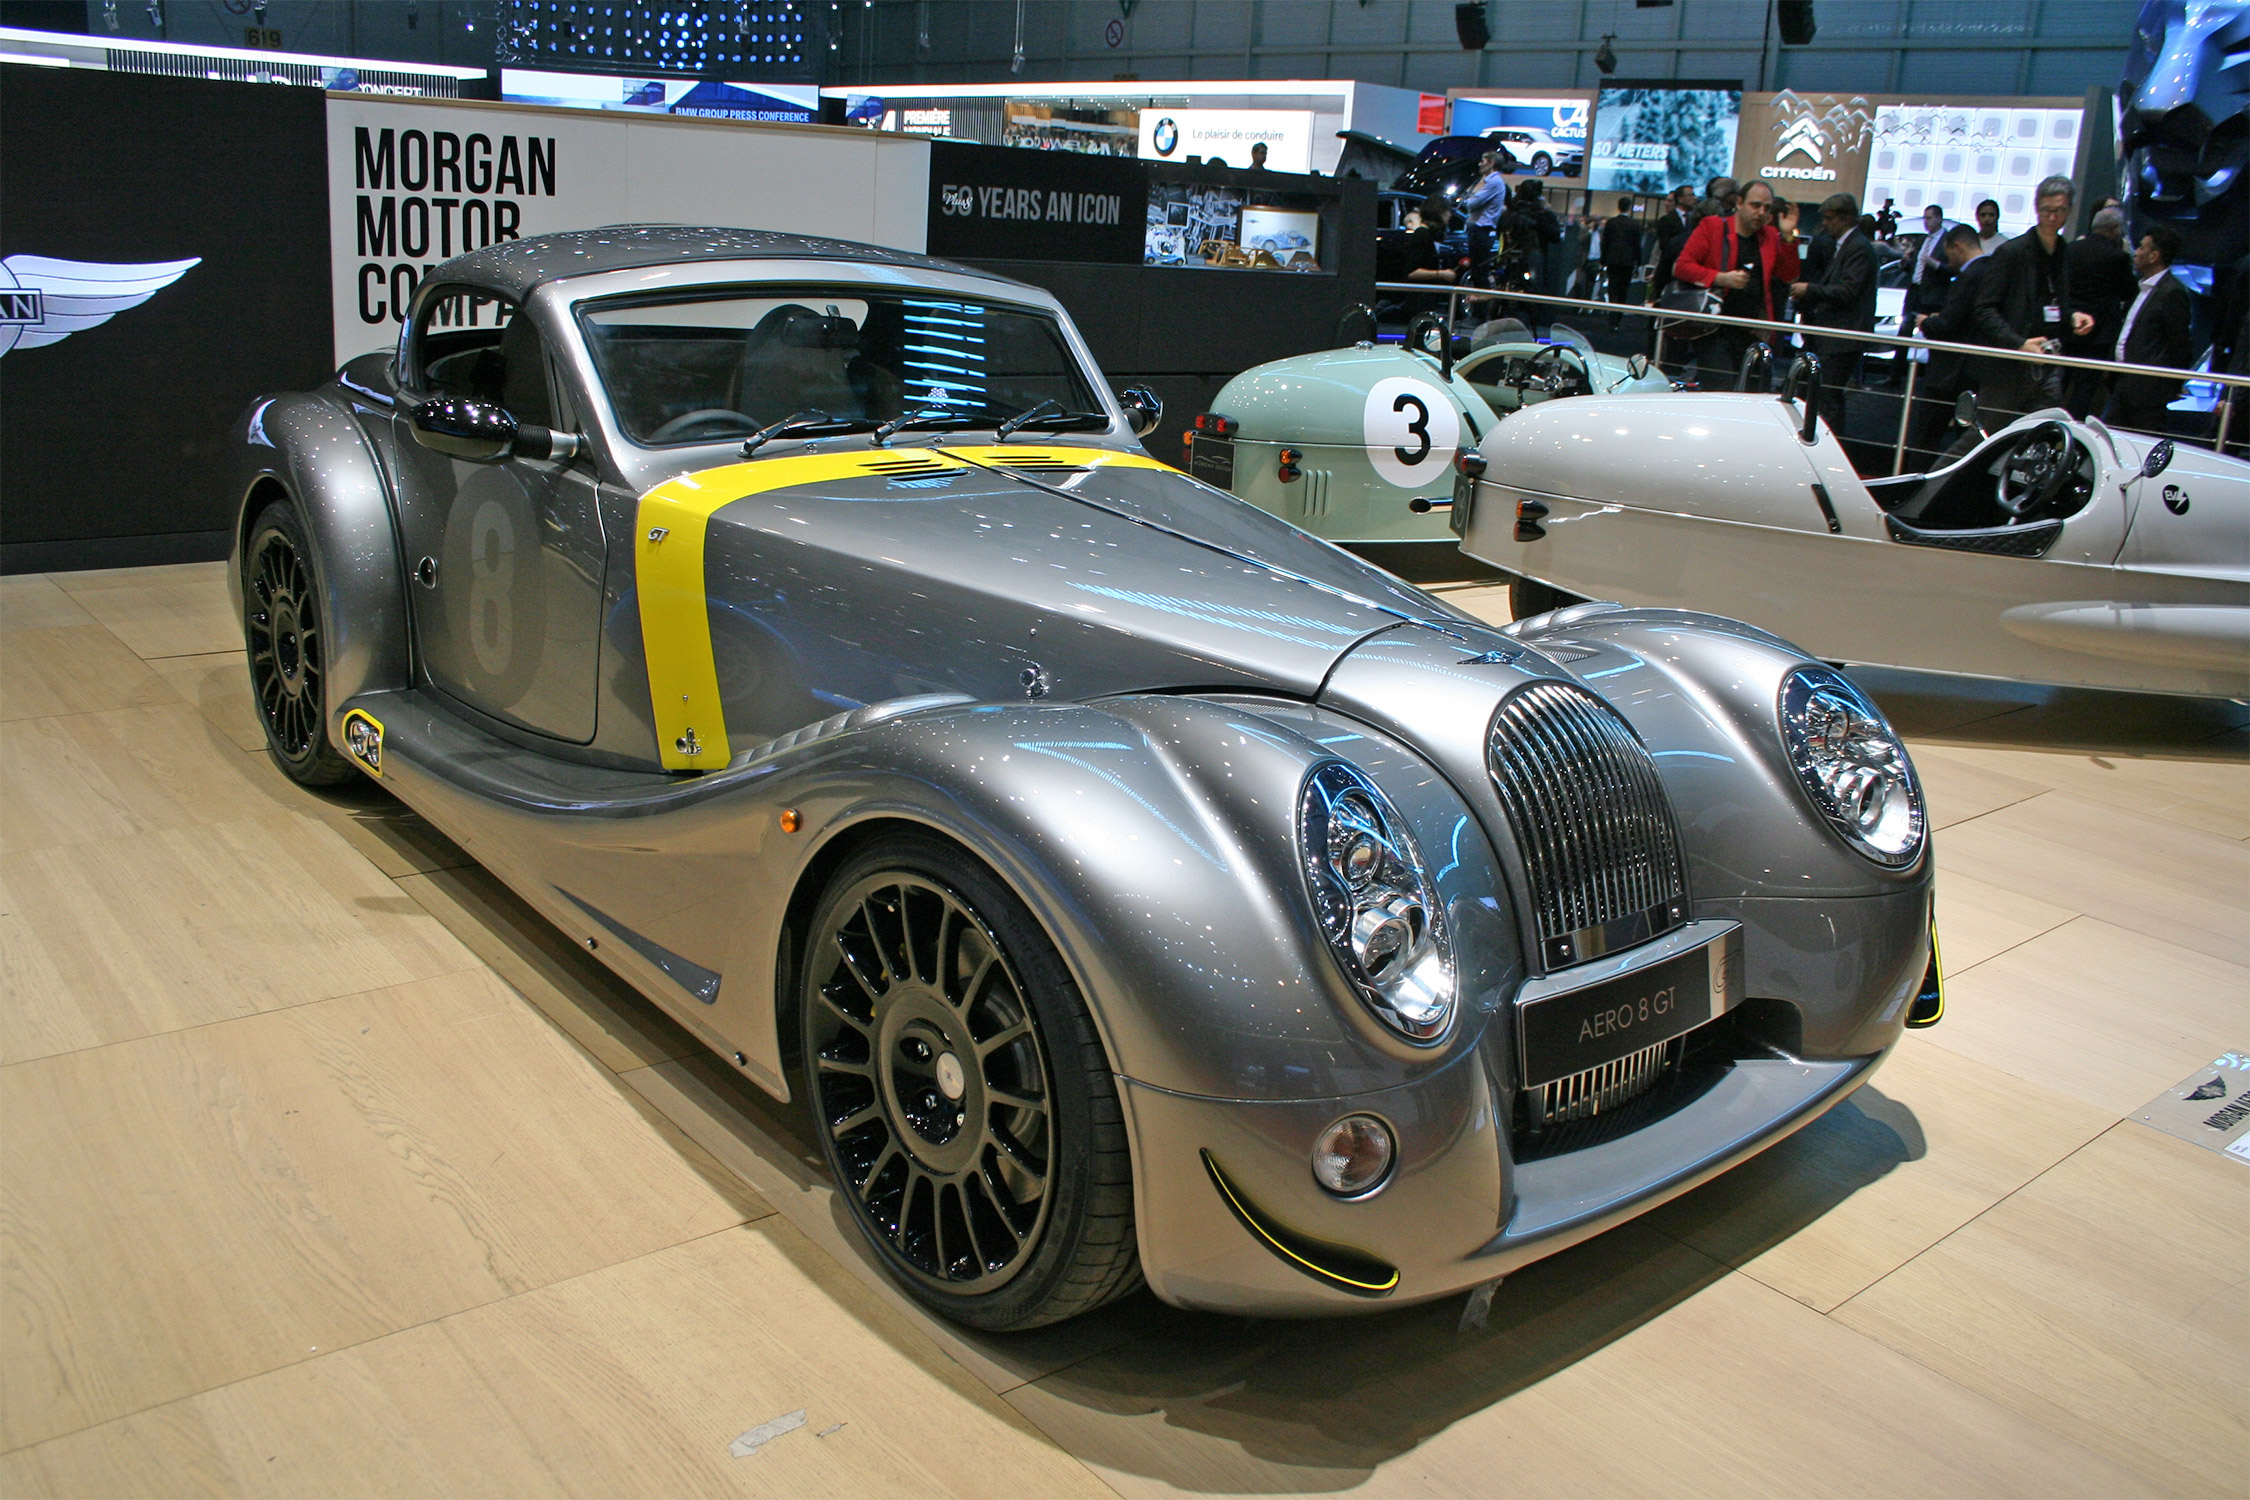 morgan aero gt salon de gen232ve gims 2018 motorlegendcom